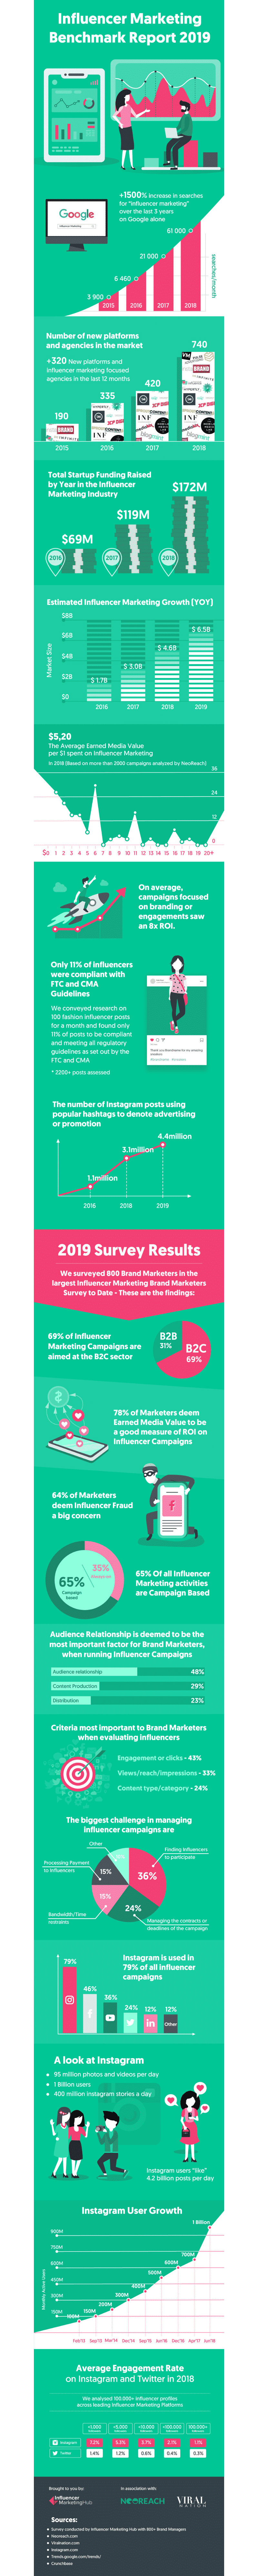 Dive further into the numbers and take a look at the state of influencer marketing in this great infographic!